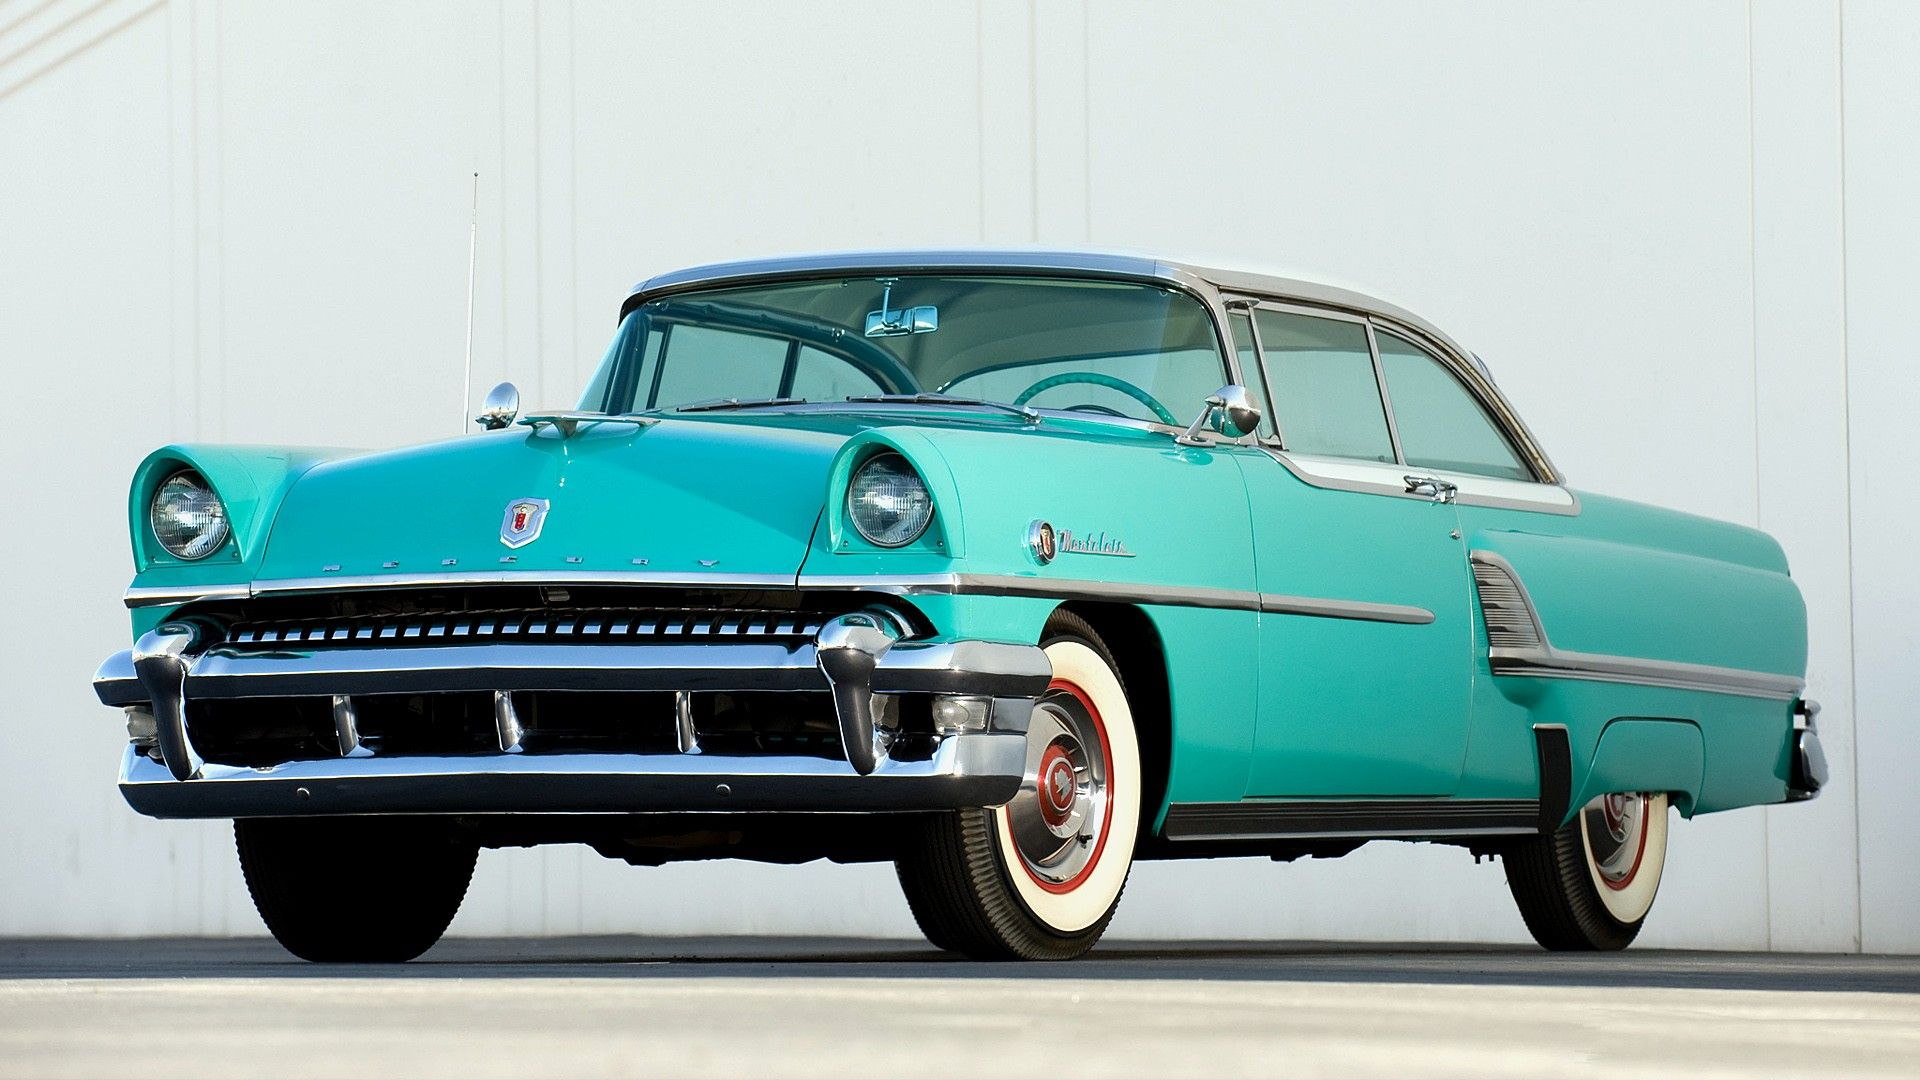 Vintage cars google search vintage american cars hot - Old american cars wallpapers ...